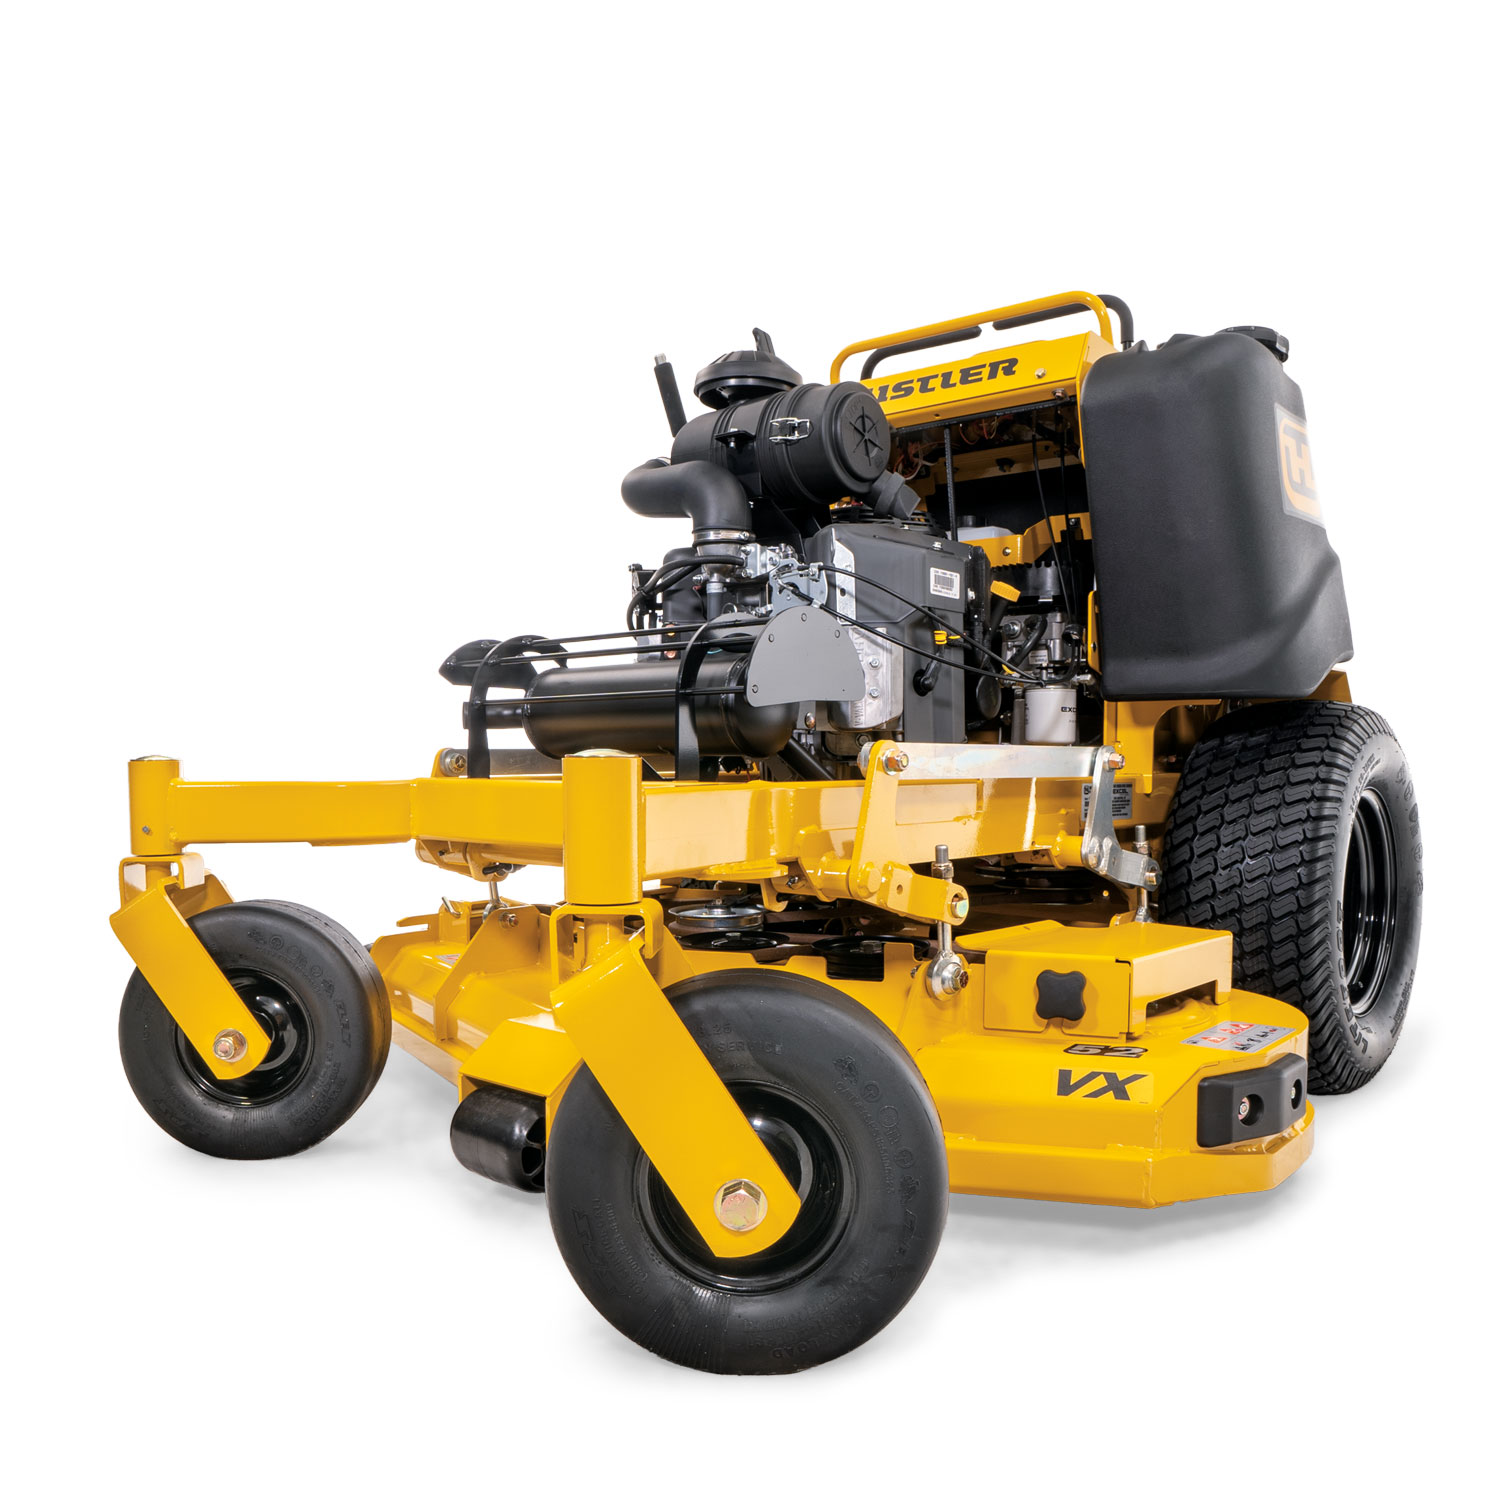 Image of the front three quarters of a yellow stand-on mower